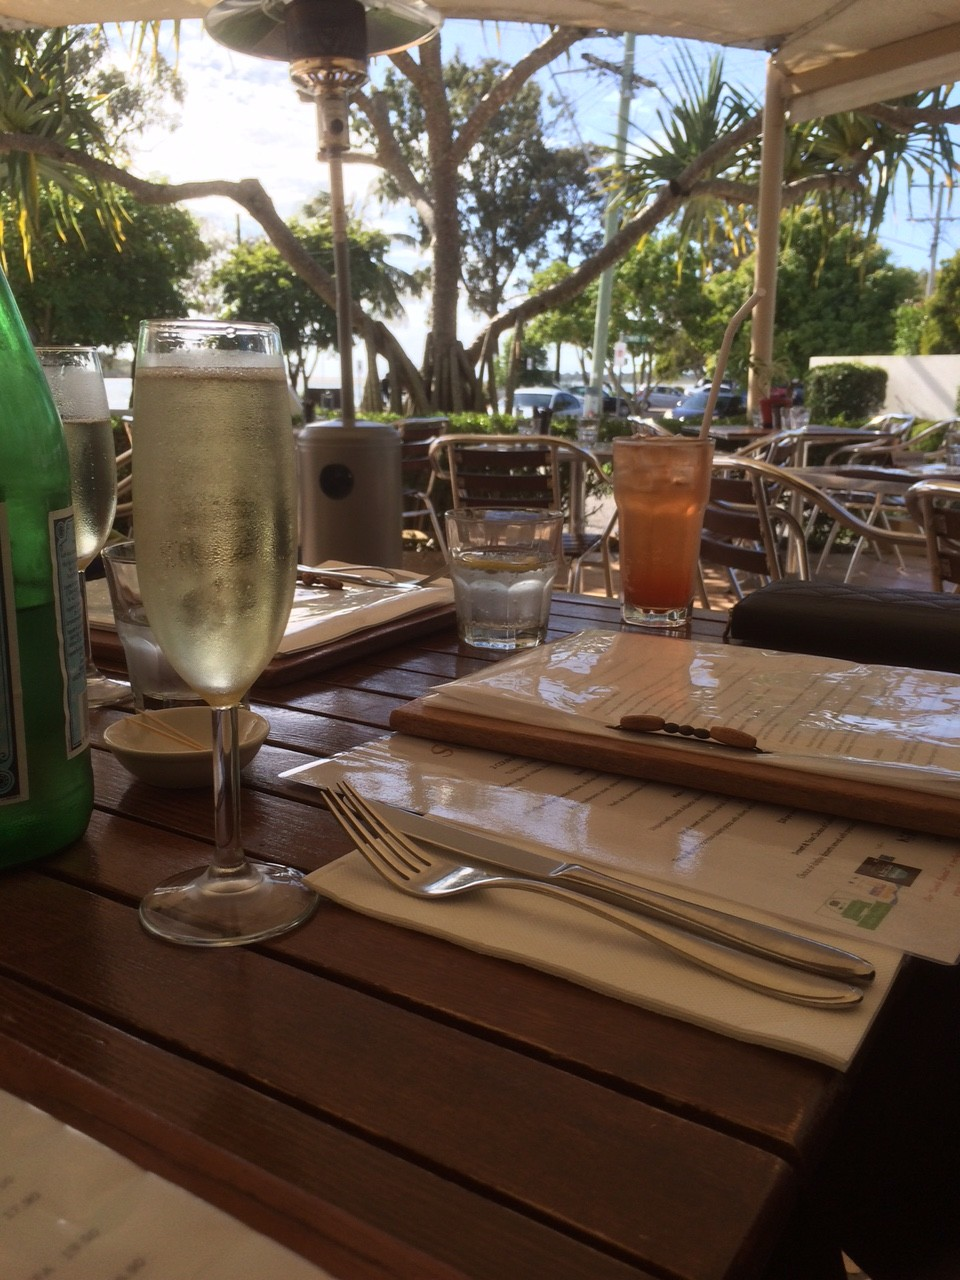 Lunch and bubbles in Noosa